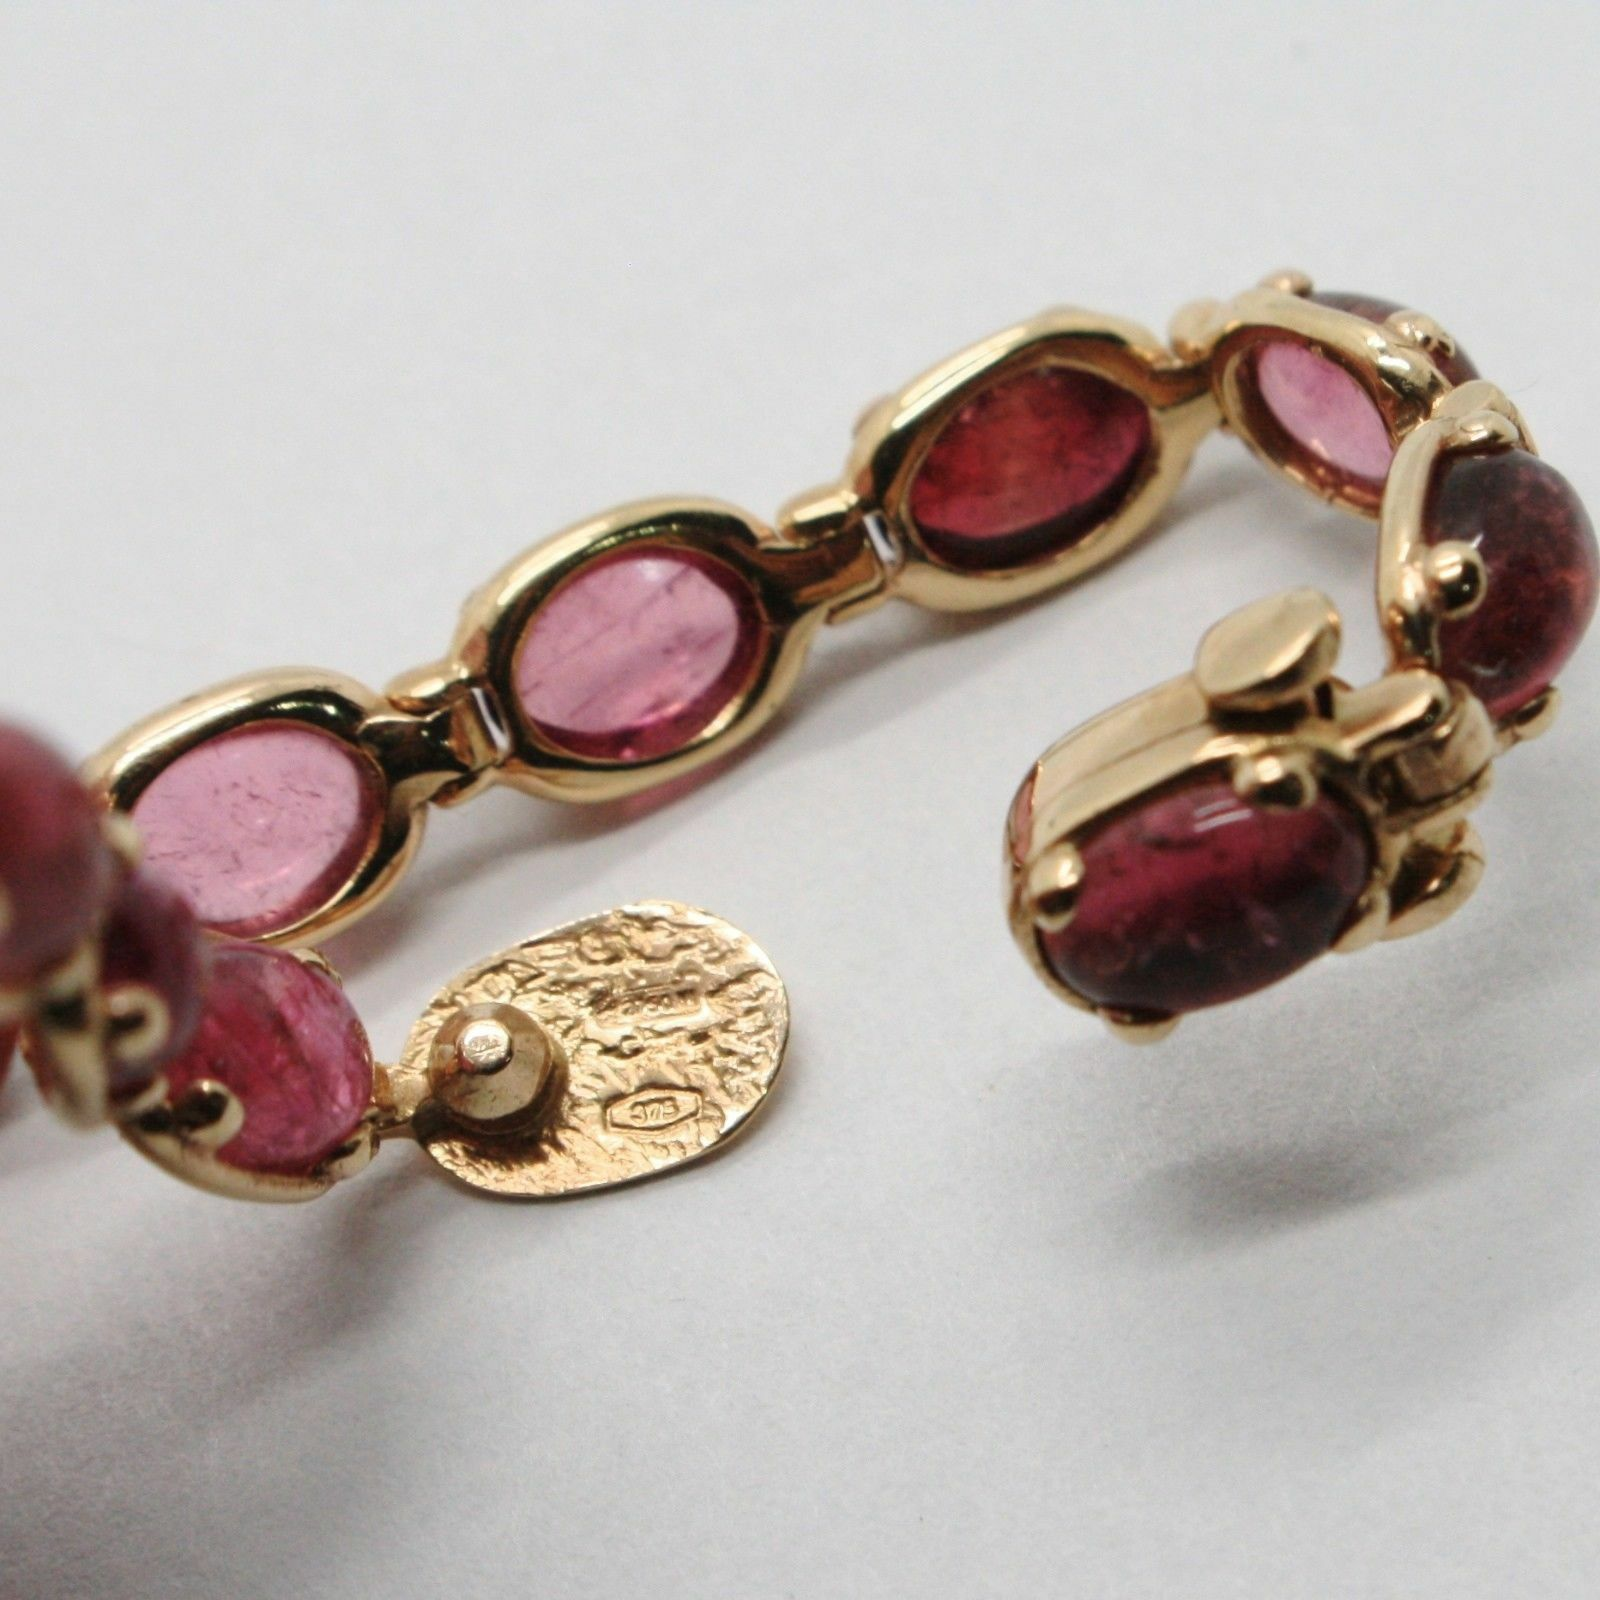 Bracelet Gold Pink 9k Type Tennis with Tourmaline Pink, Made in Italy image 5